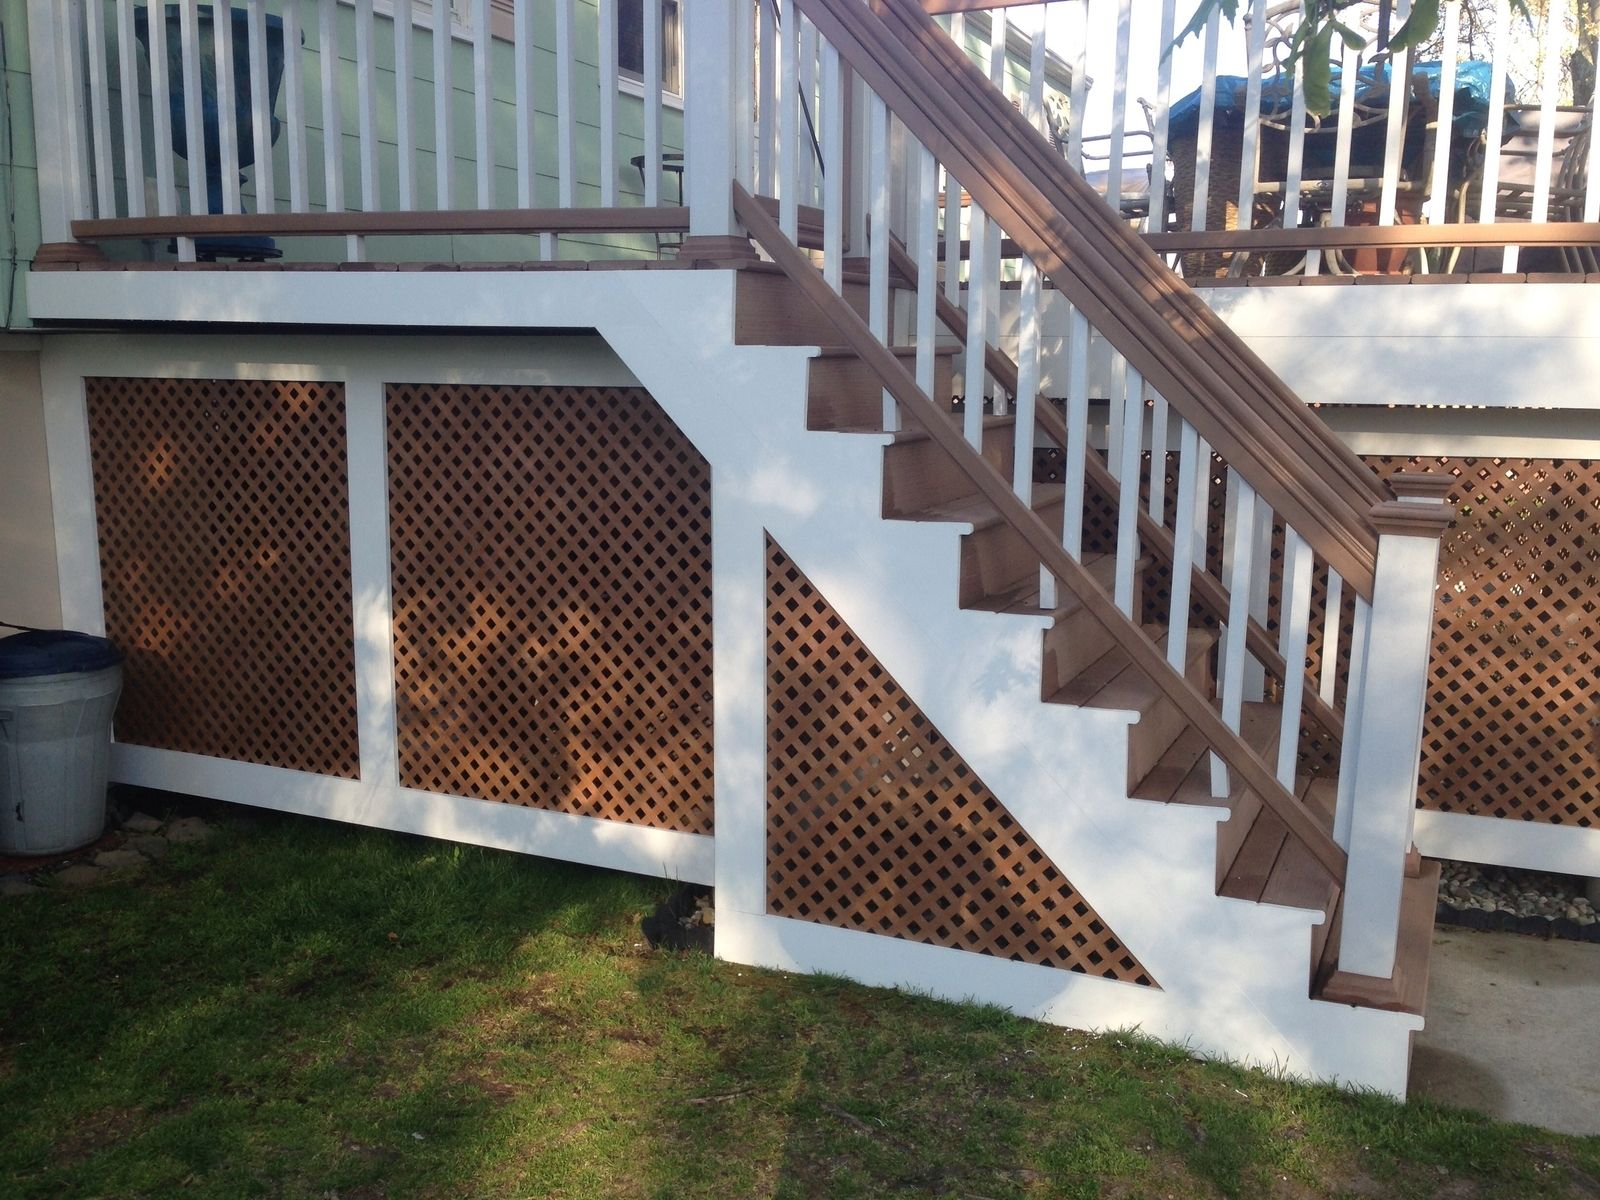 Custom azek and lattice porch enclosure by cla woodworking for Outdoor lattice